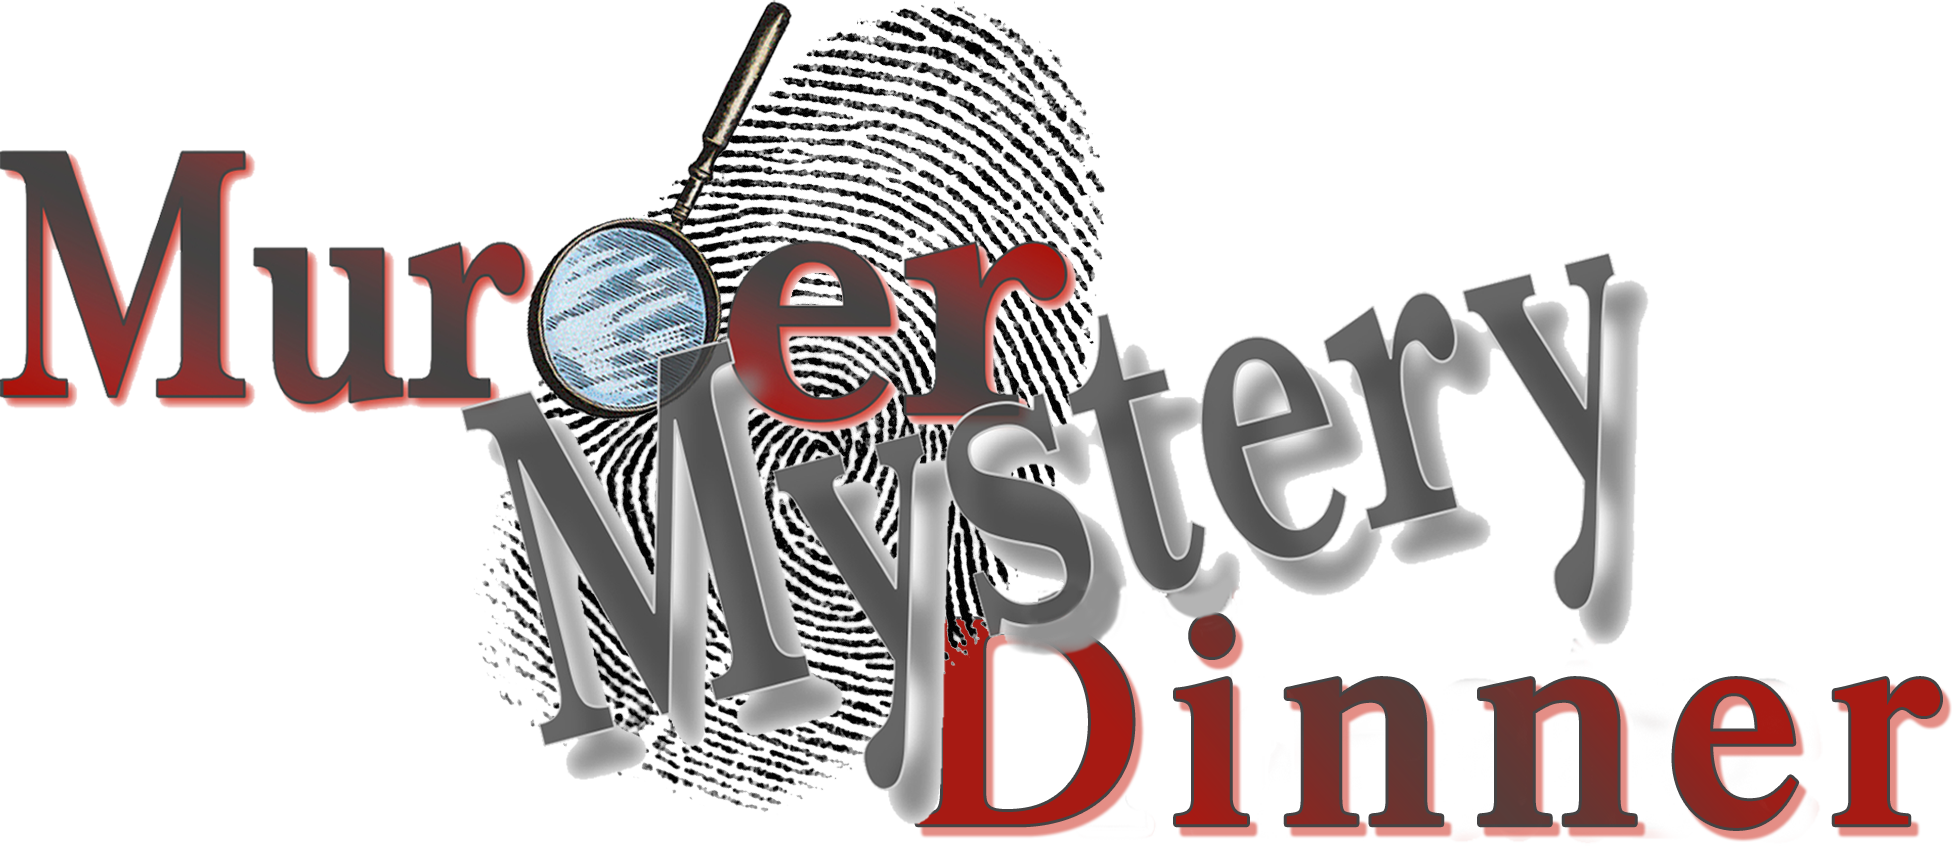 Murderinmexico Murder Mystery Dinner And Luncheon Theatre In Mazatlan Mexico Productions